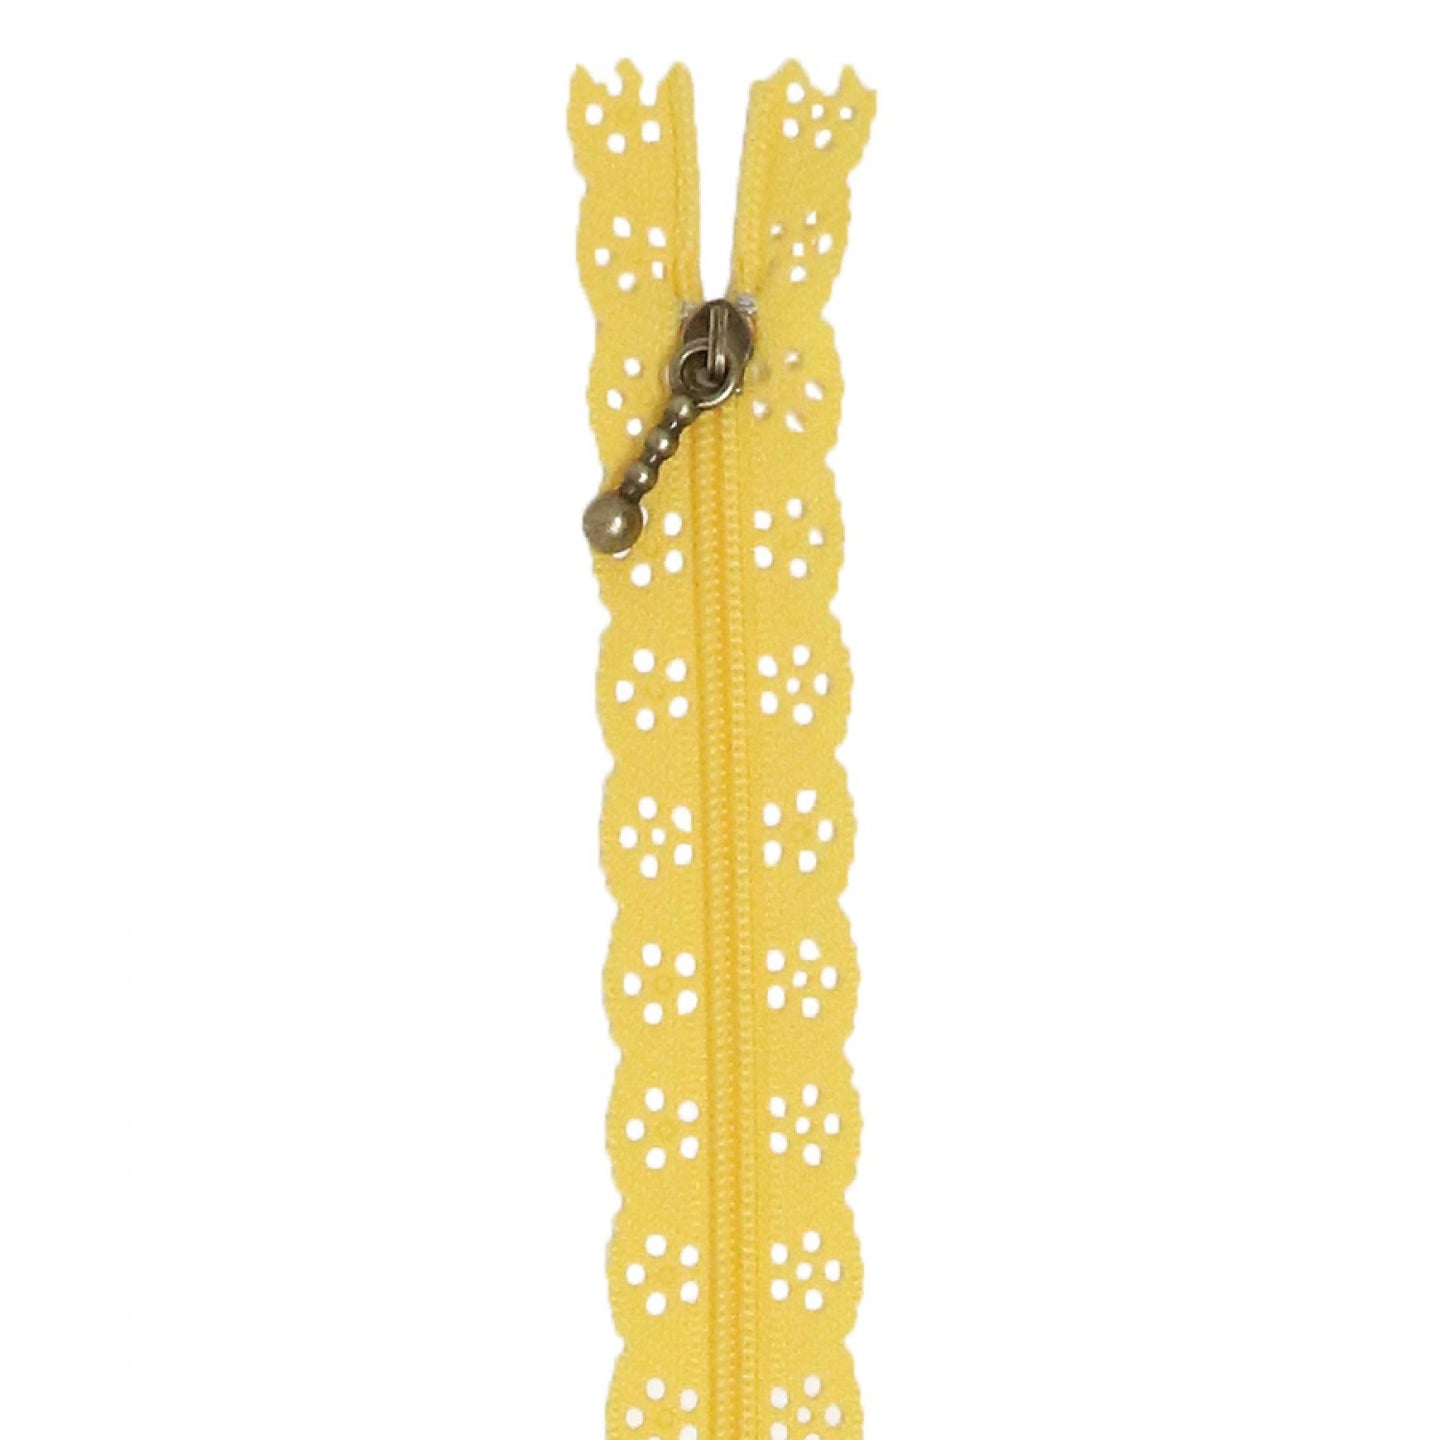 Lace Zipper - 14 Inch - Canary Yellow